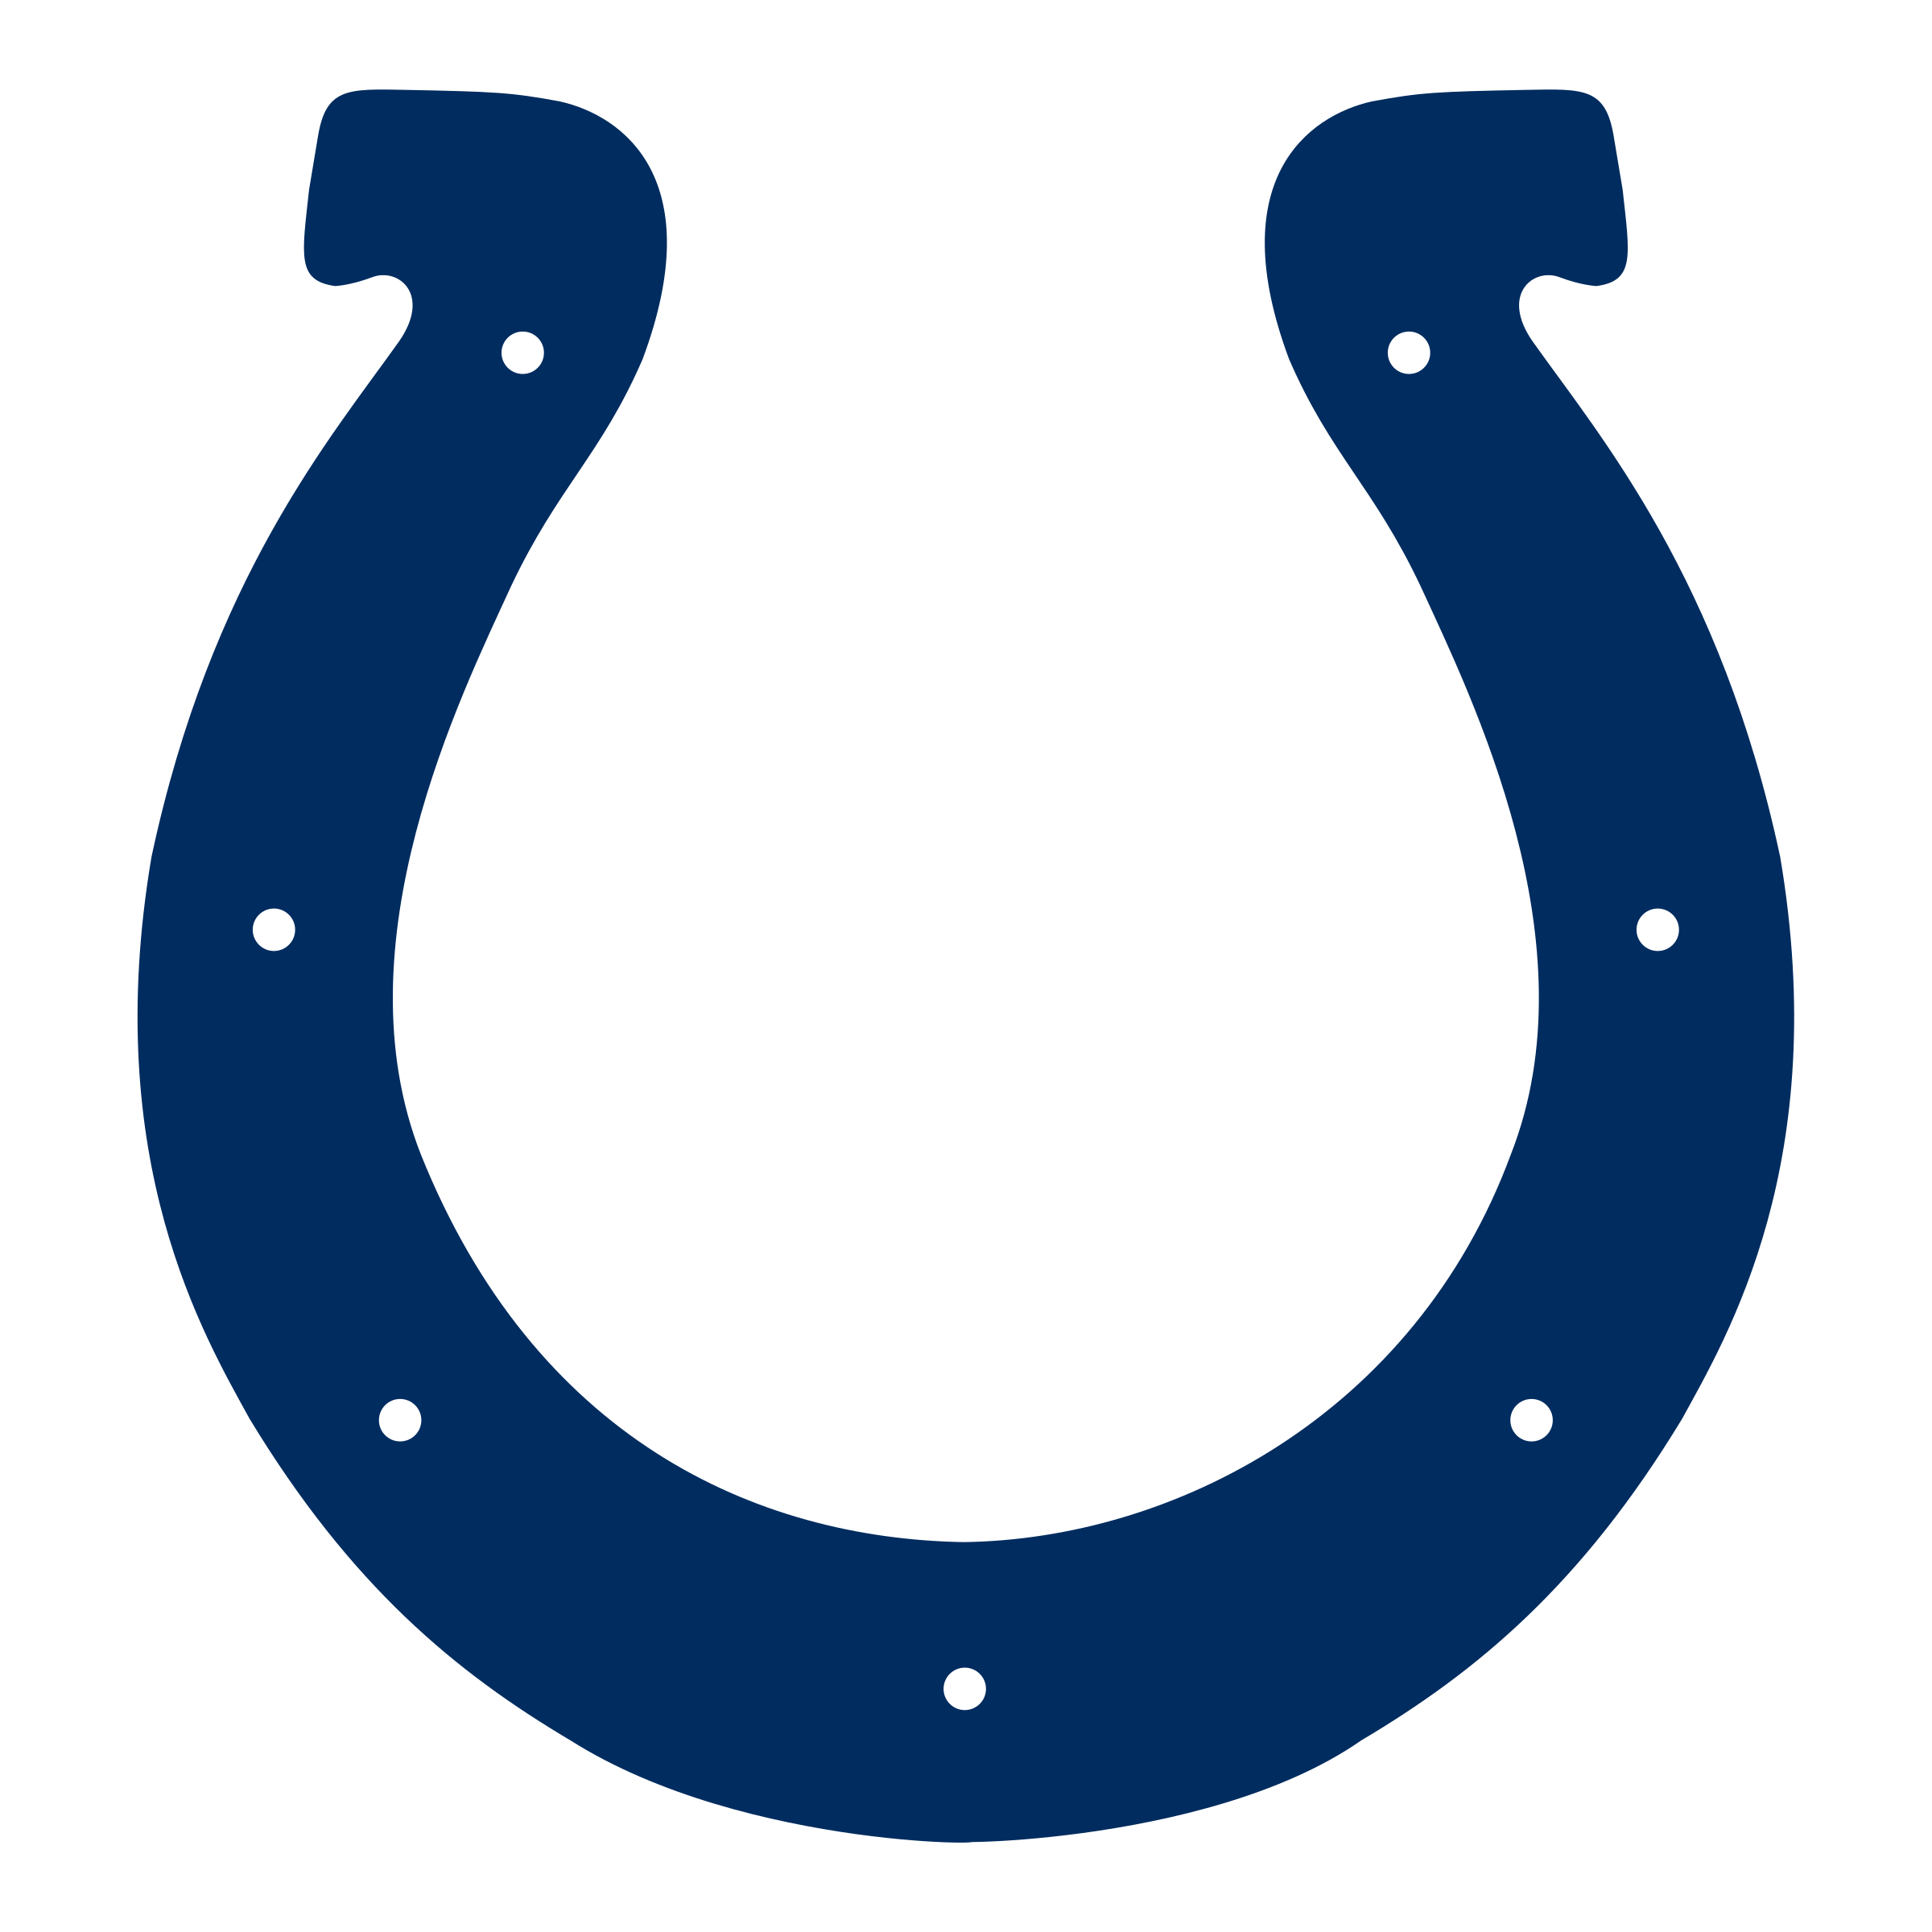 Indianapolis Colts Logo PNG Transparent & SVG Vector - Freebie Supply